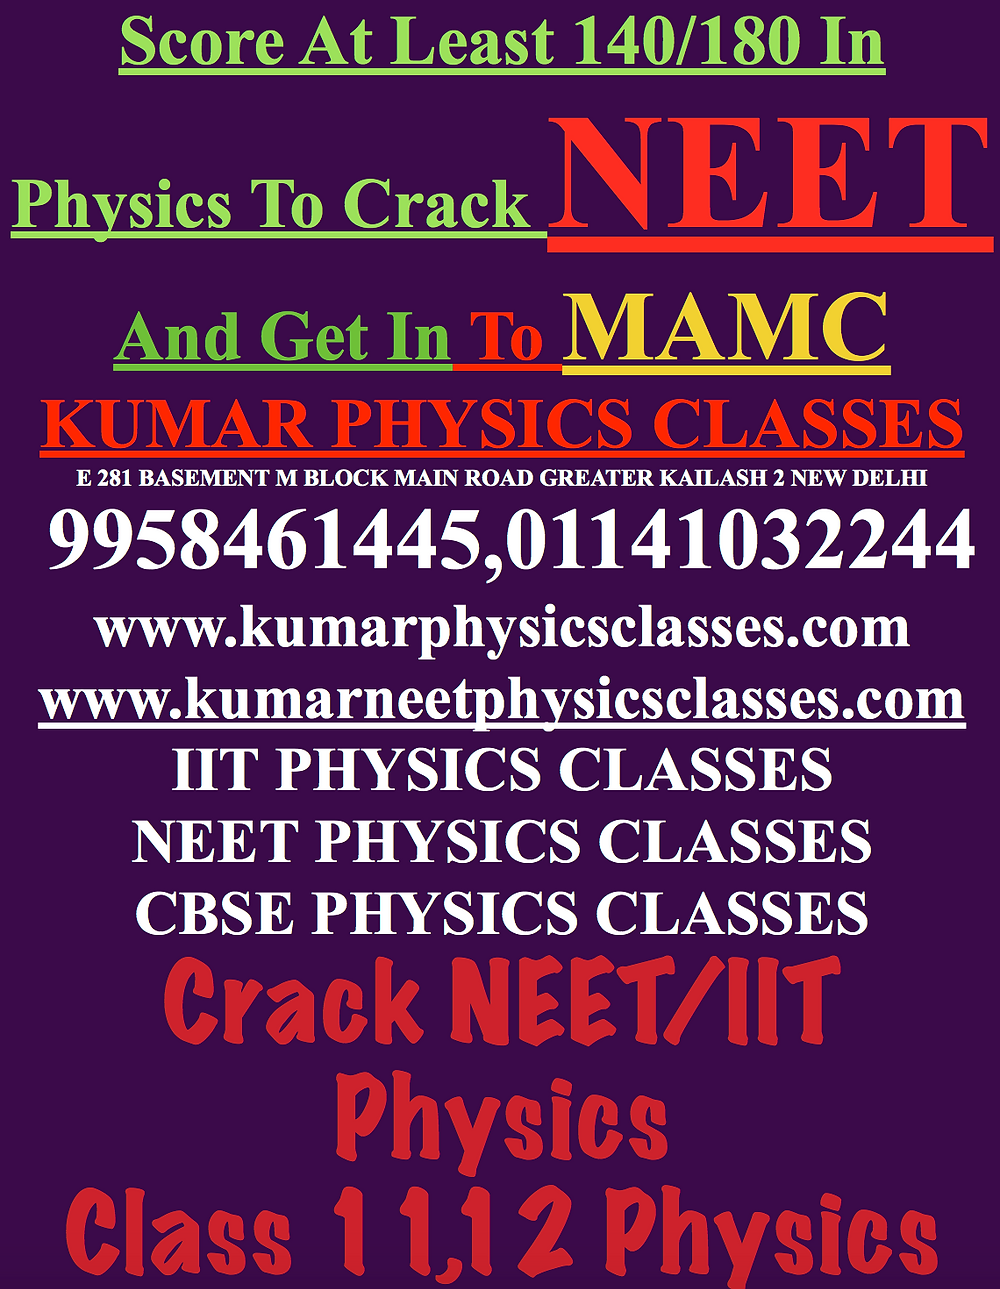 Score At Least 140/180 In Physics To Crack NEET And Get In To MAMC KUMAR PHYSICS CLASSES E 281 BASEMENT M BLOCK MAIN ROAD GREATER KAILASH 2 NEW DELHI  9958461445,01141032244 www.kumarphysicsclasses.com www.kumarneetphysicsclasses.com IIT PHYSICS CLASSES NEET PHYSICS CLASSES CBSE PHYSICS CLASSES Crack NEET/IIT Physics Class 11,12 Physics Physics Classes In Delhi,Physics Classes In R K Puram,Physics Classes In ASHARAM,Physics Classes In Jasola Vihar,Physics Classes In South Ex,Physics Classes In South Ex